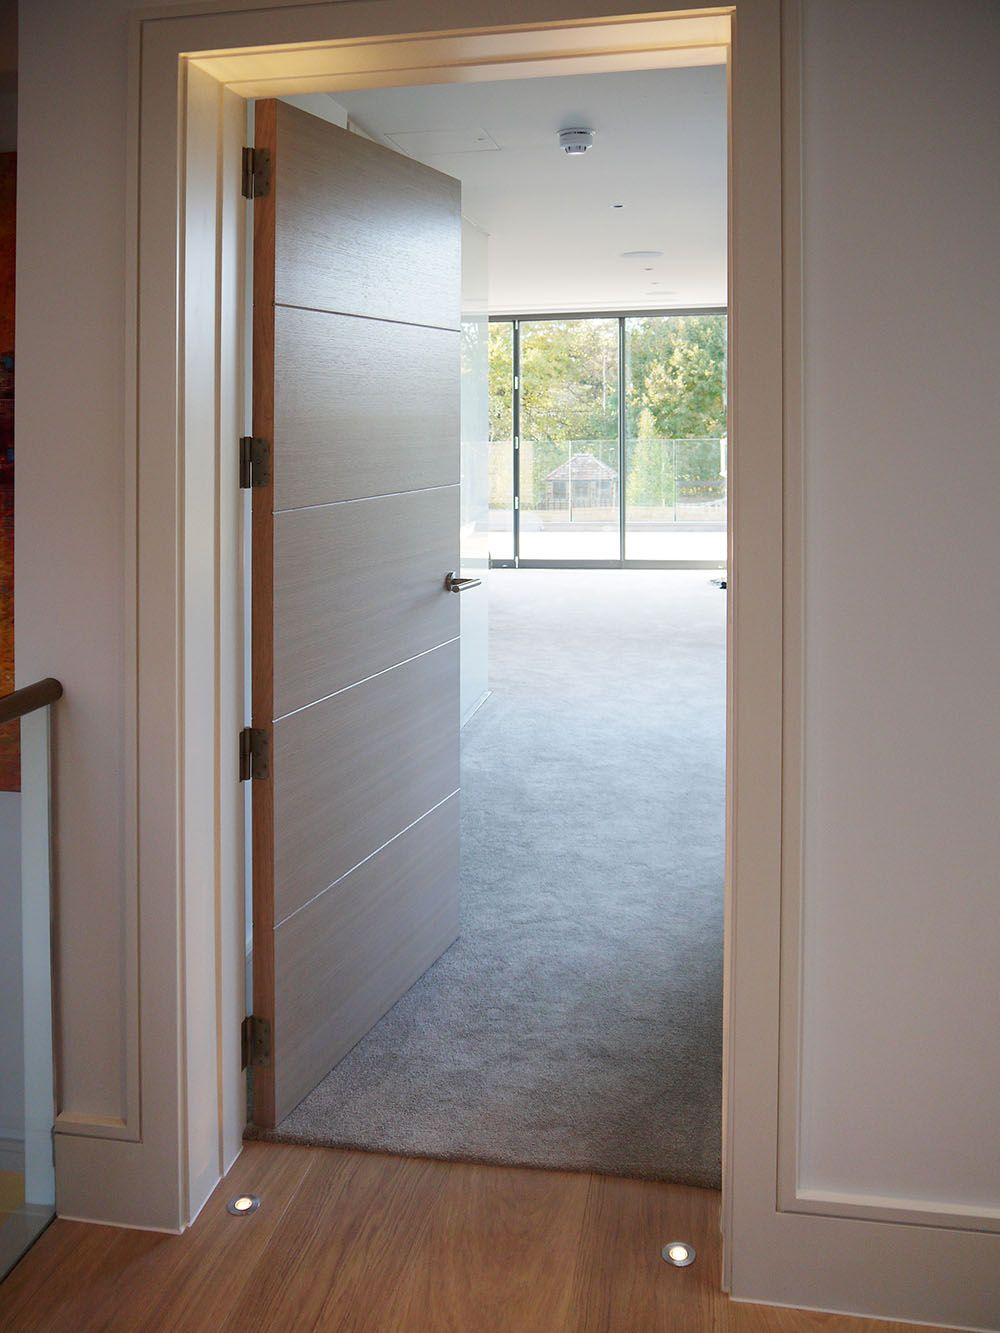 open bedroom door - How To Unlock Bedroom Door